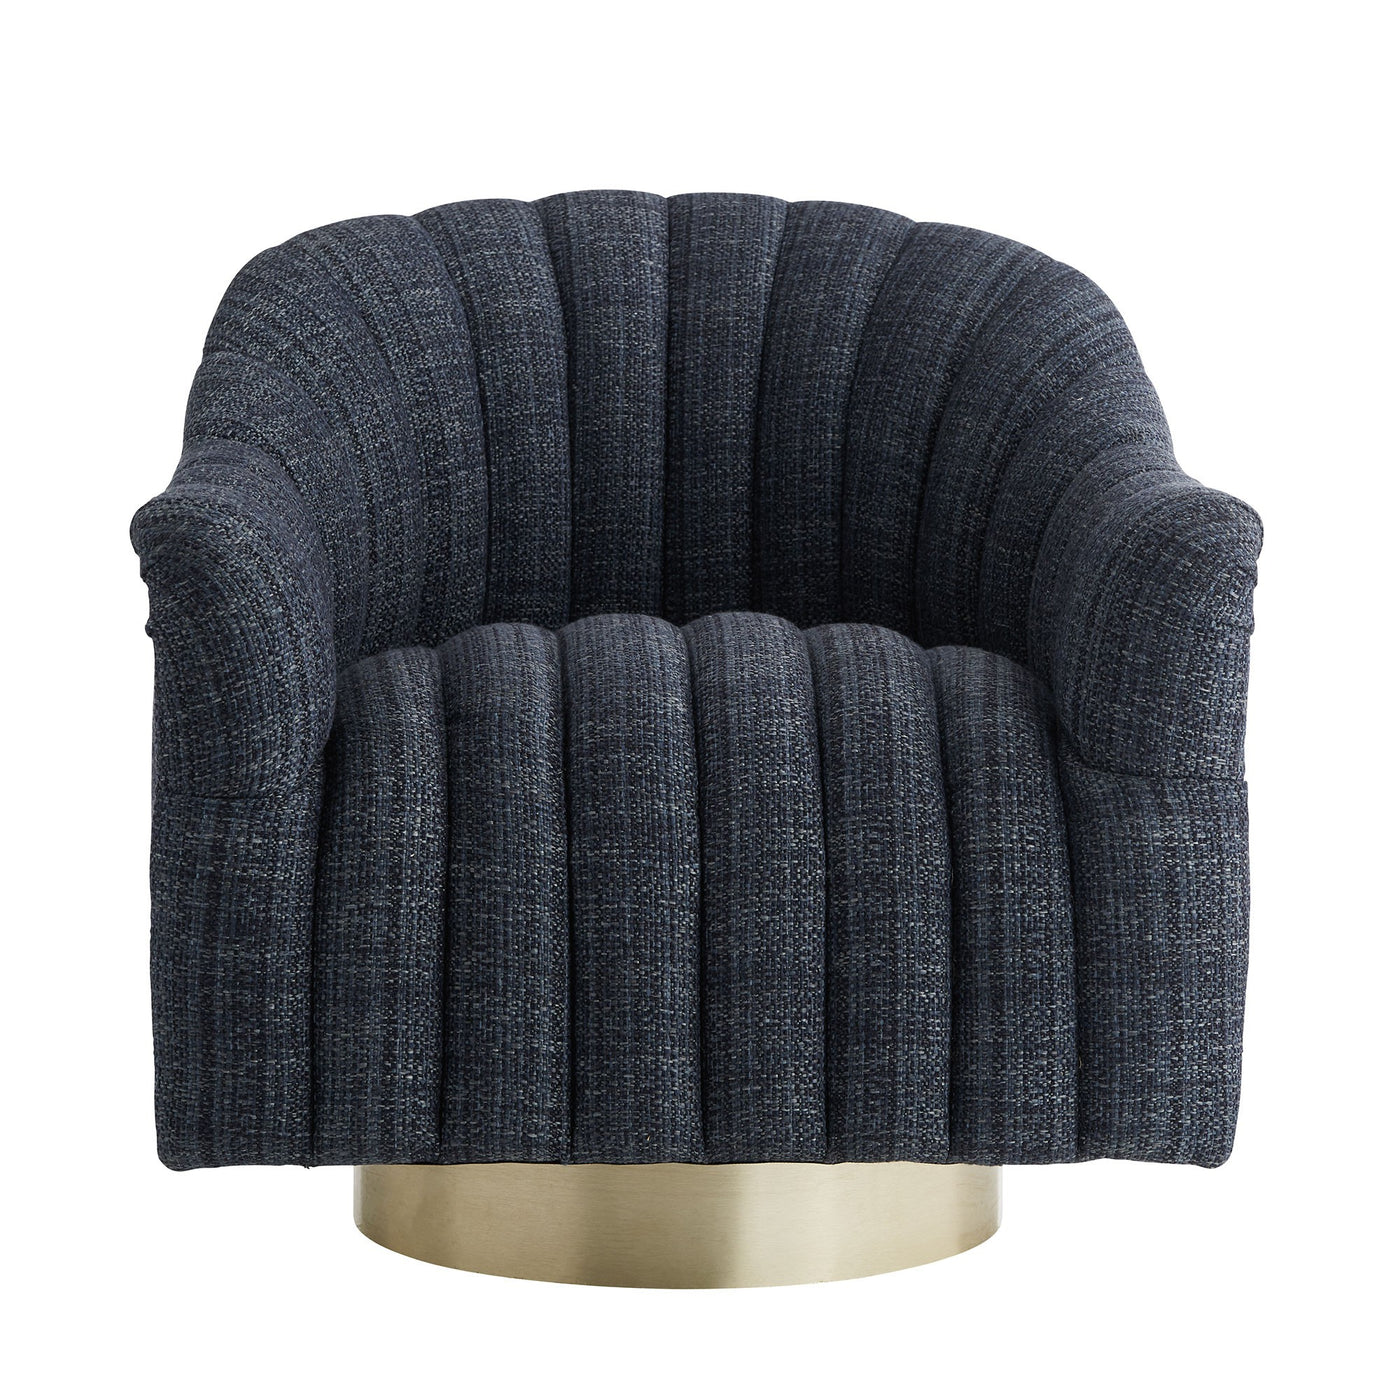 arteriors home springsteen chair indigo tweed